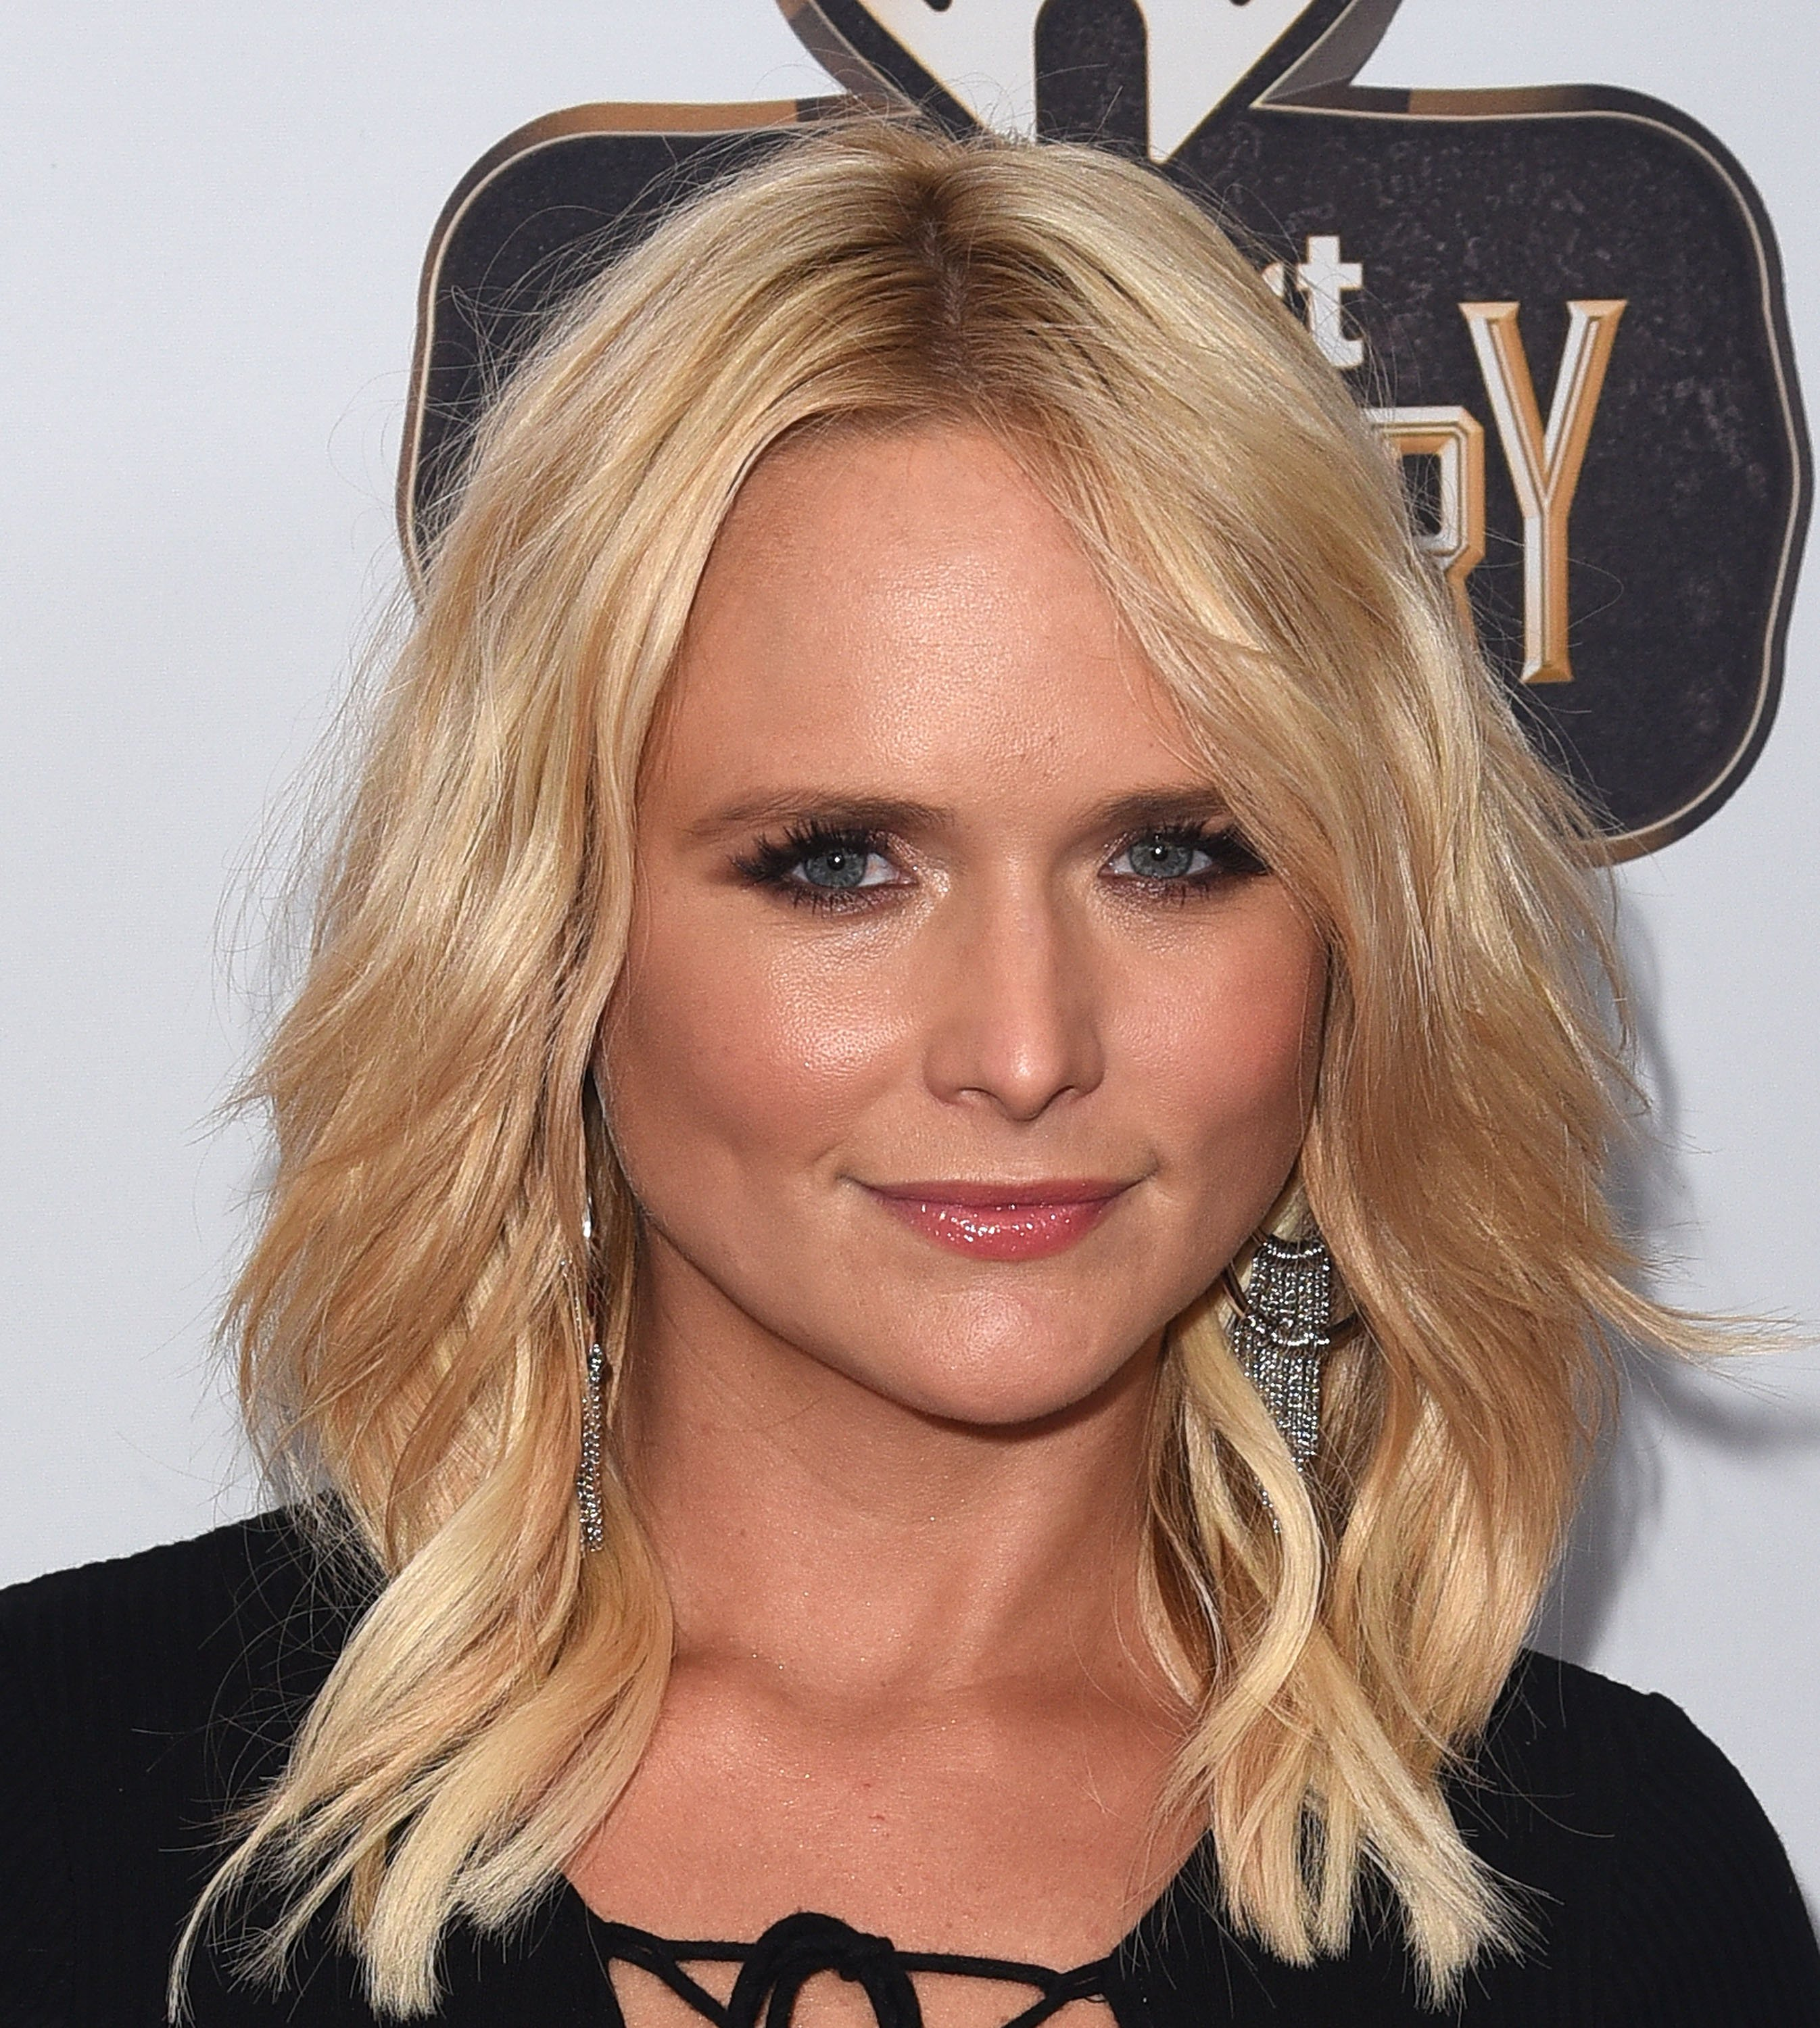 Miranda Lambert arrives to the 2016 iHeartCountry Festival at The Frank Erwin Center on April 30, 2016, in Austin, Texas. | Source: Getty Images.